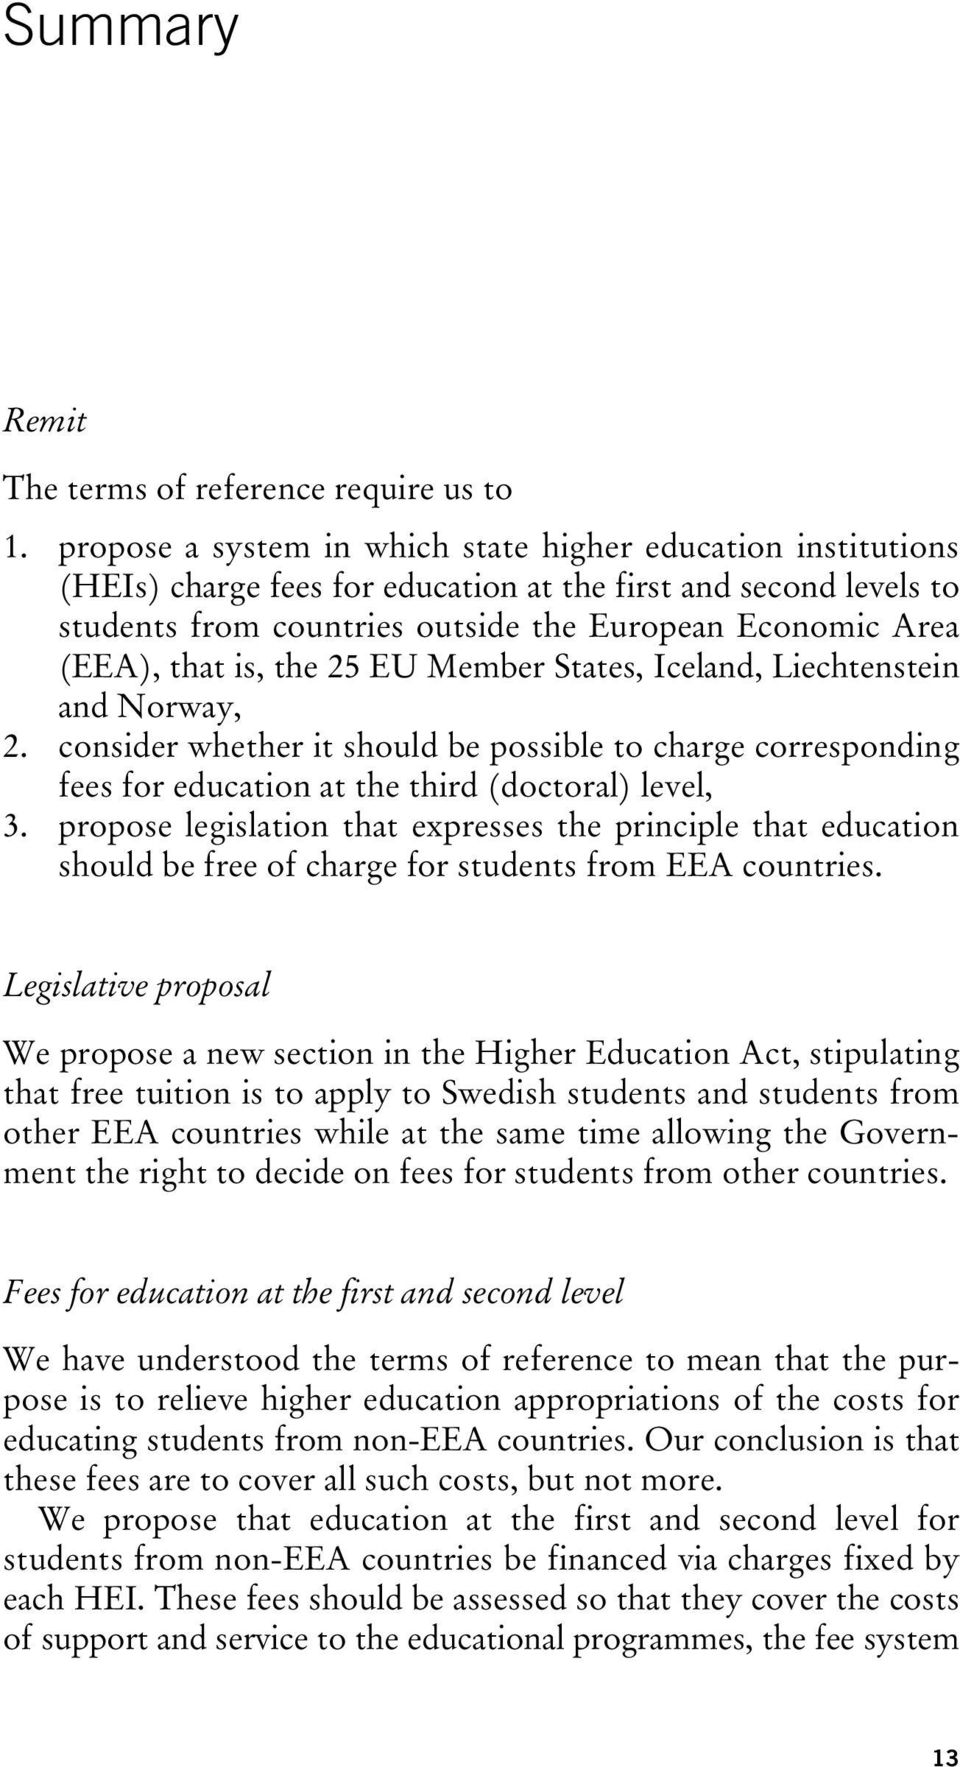 is, the 25 EU Member States, Iceland, Liechtenstein and Norway, 2. consider whether it should be possible to charge corresponding fees for education at the third (doctoral) level, 3.